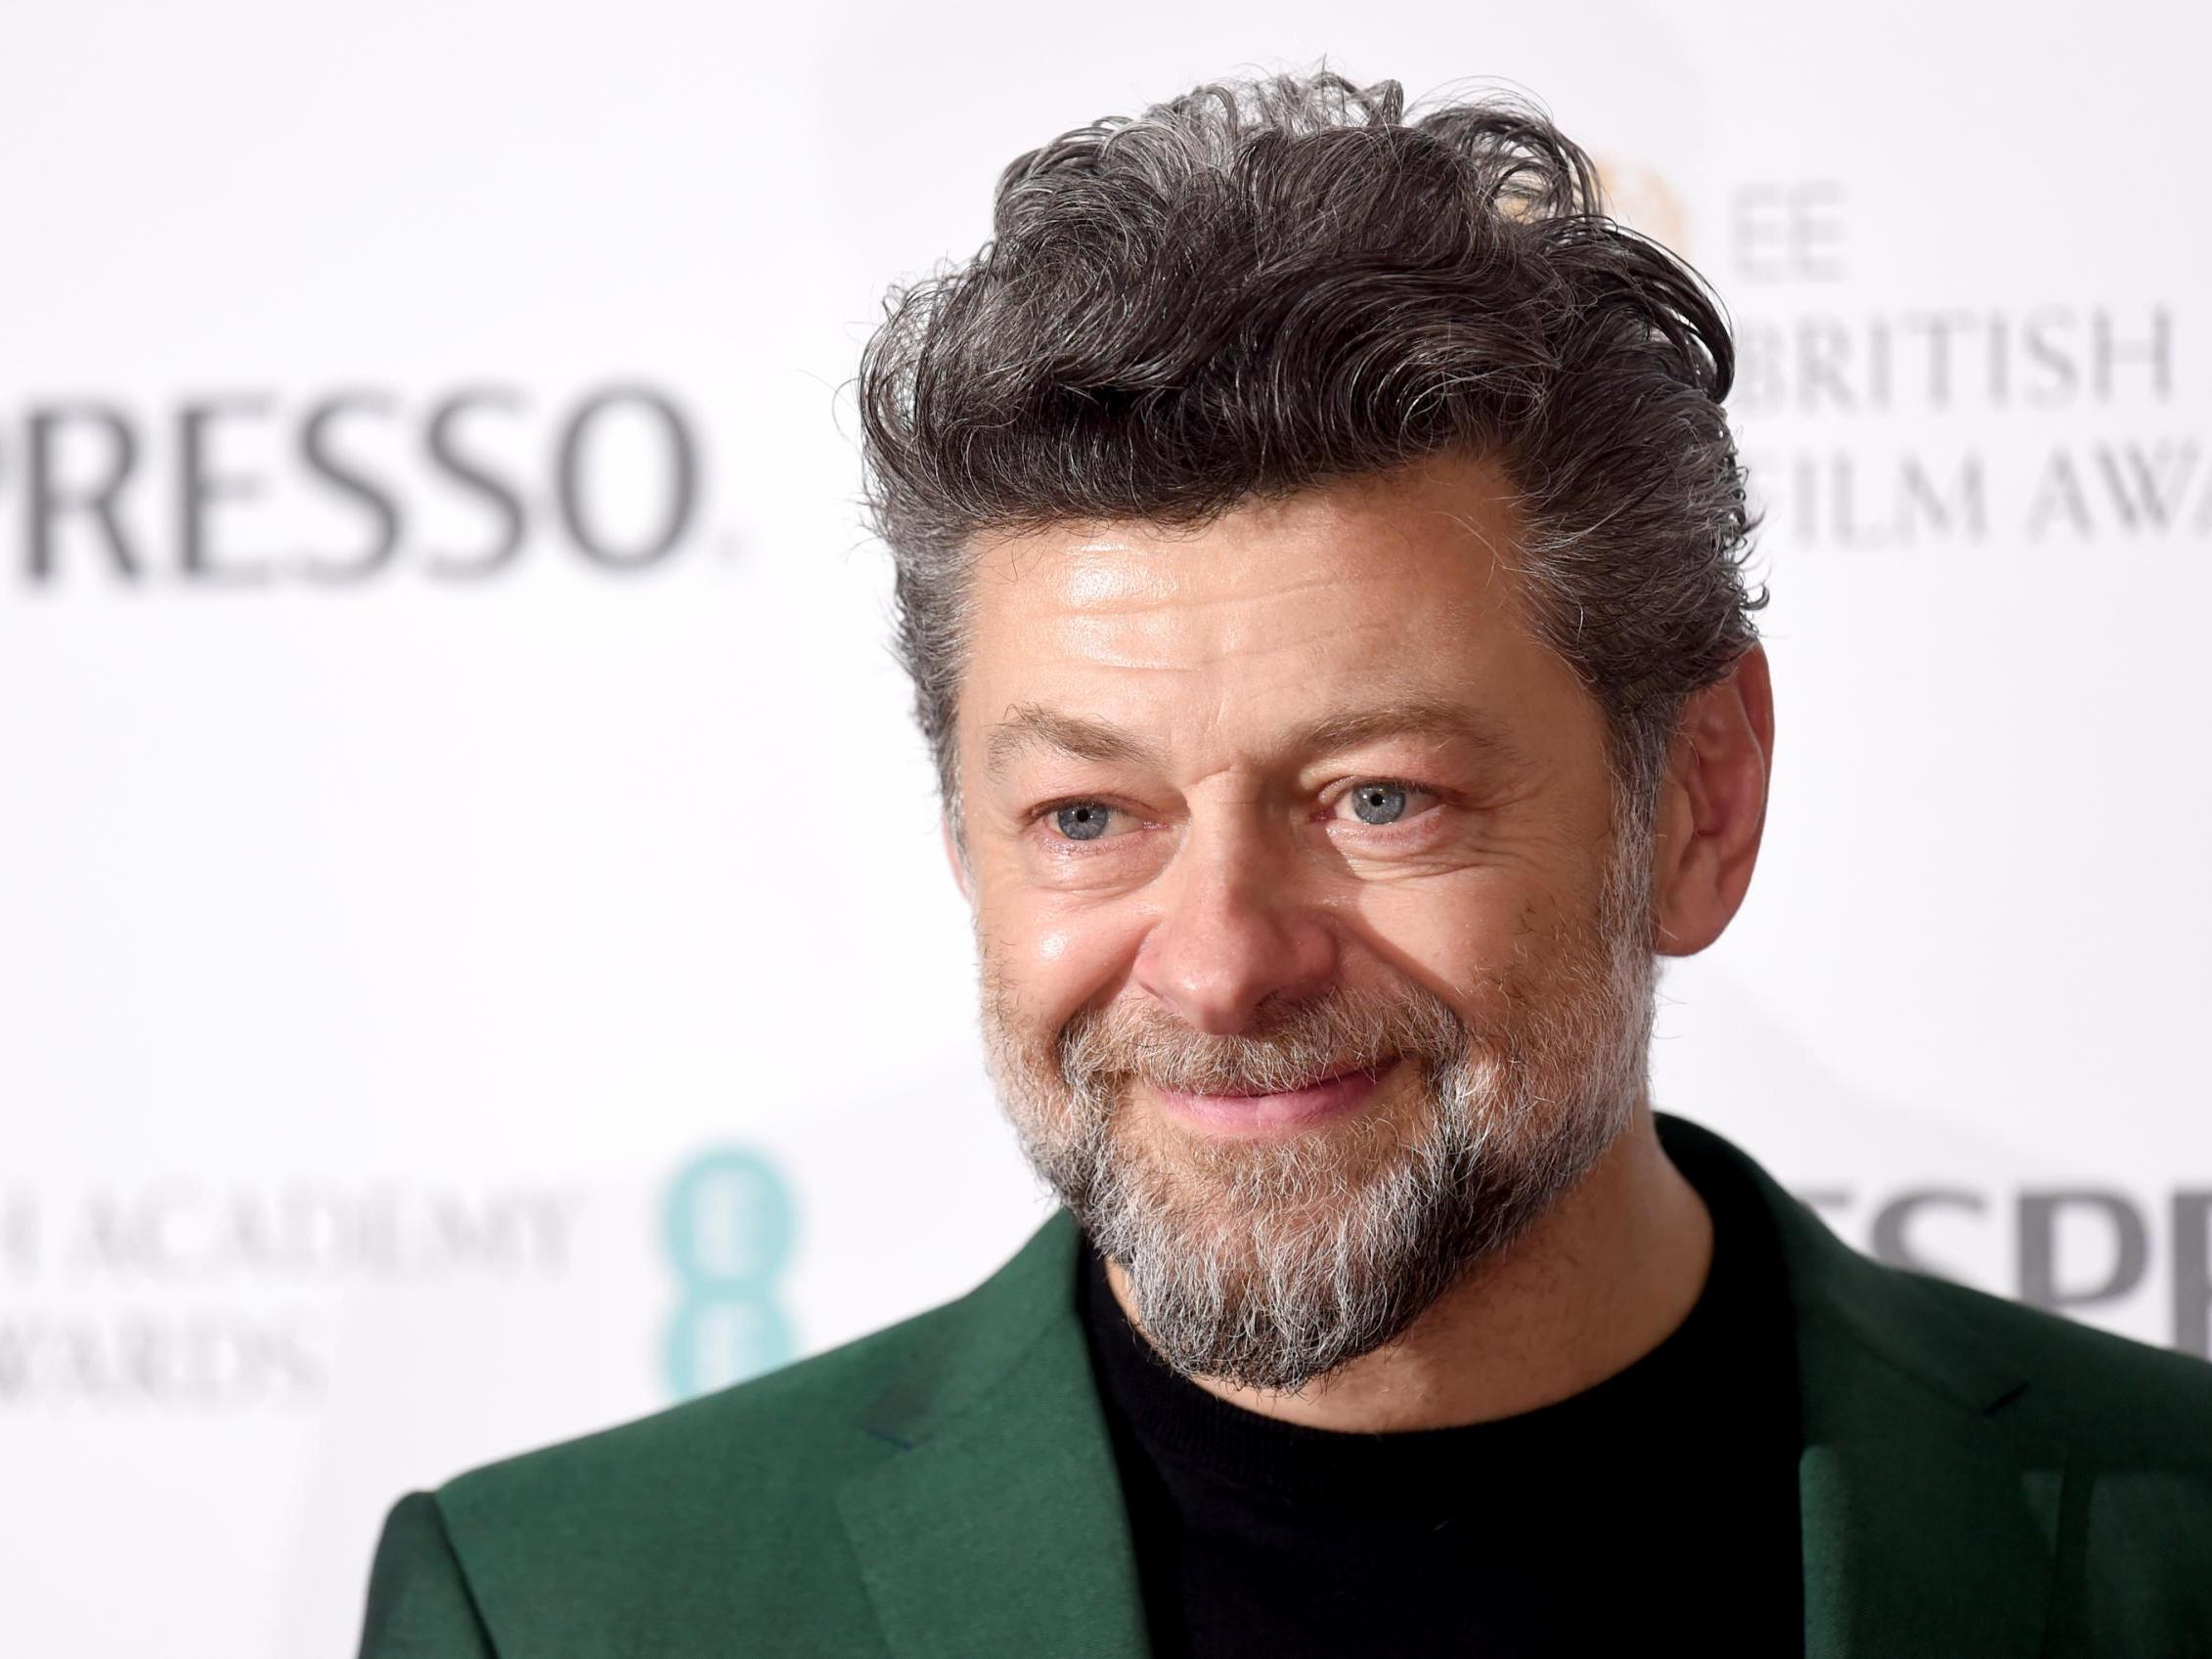 Bafta awards: Andy Serkis makes unintentional dig at Queen and Brian May with Freddie Mercury comment